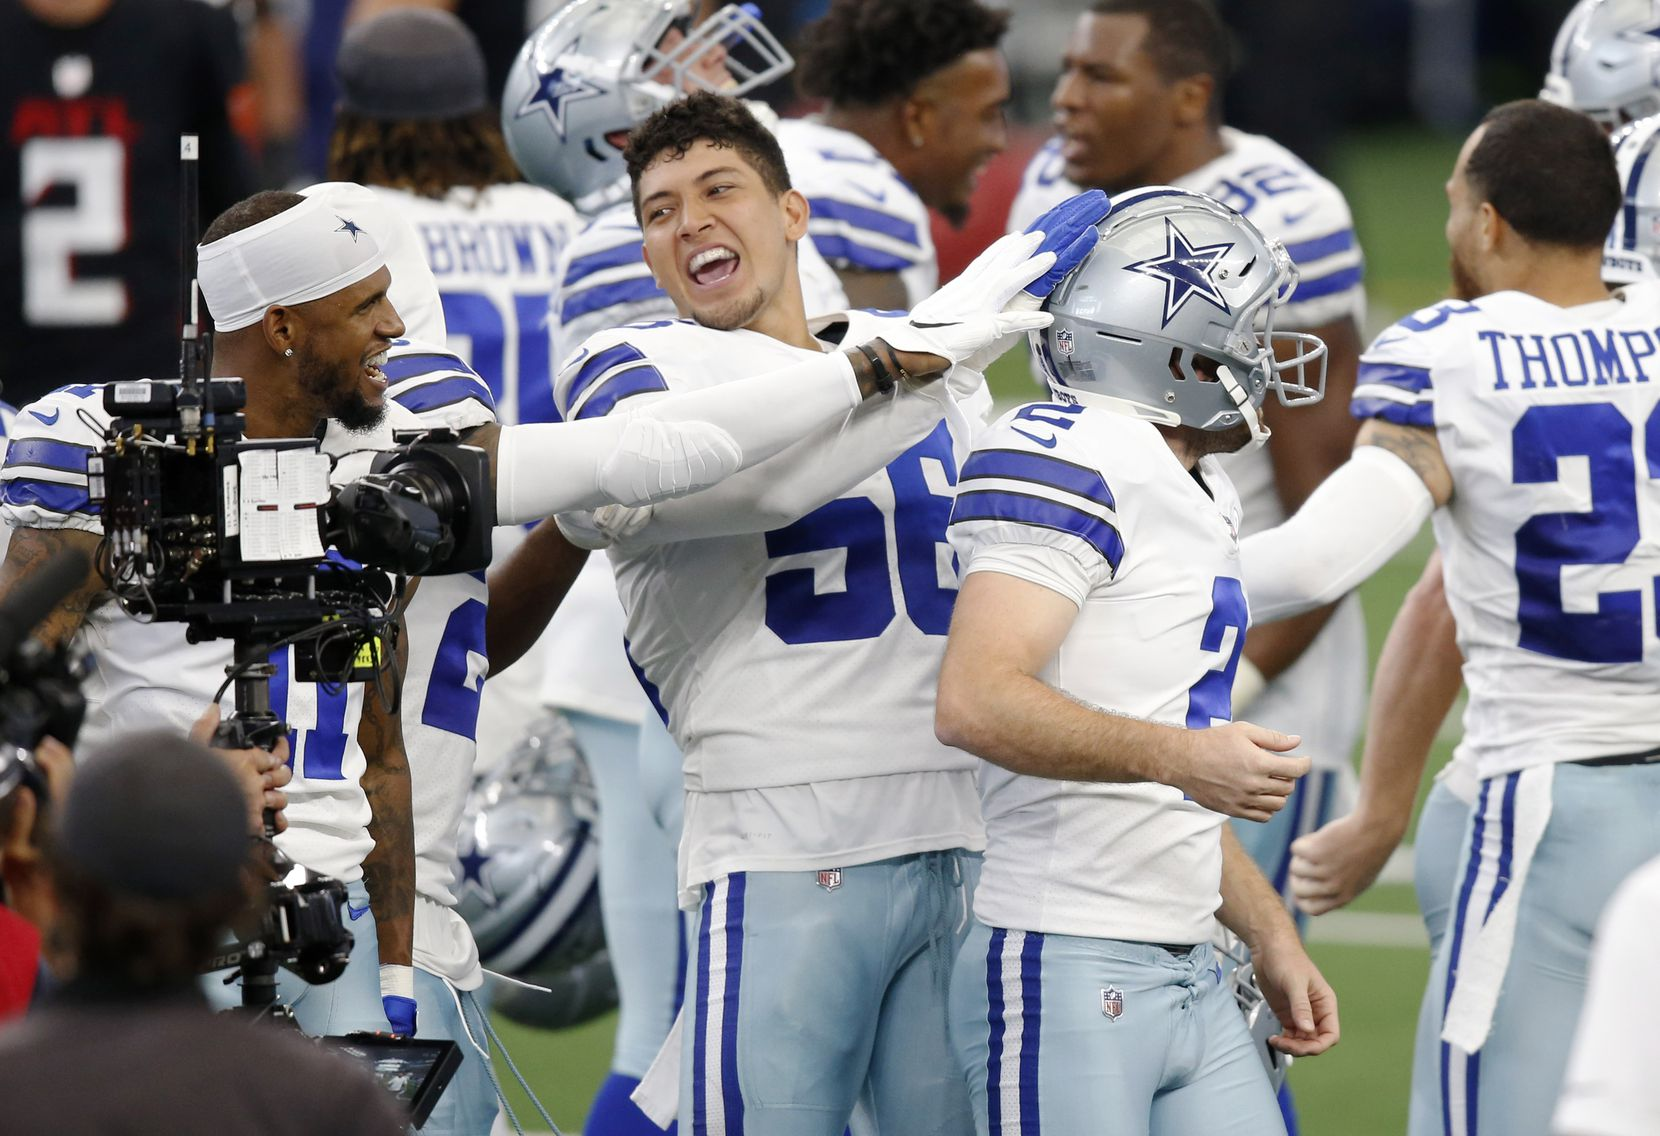 Cowboys wide receiver Malik Turner (17) and defensive end Bradlee Anae (56) congratulate kicker Greg Zuerlein (2) after he hit a game-winning field goal against the Falcons at AT&T Stadium in Arlington on Sunday, Sept. 20, 2020.